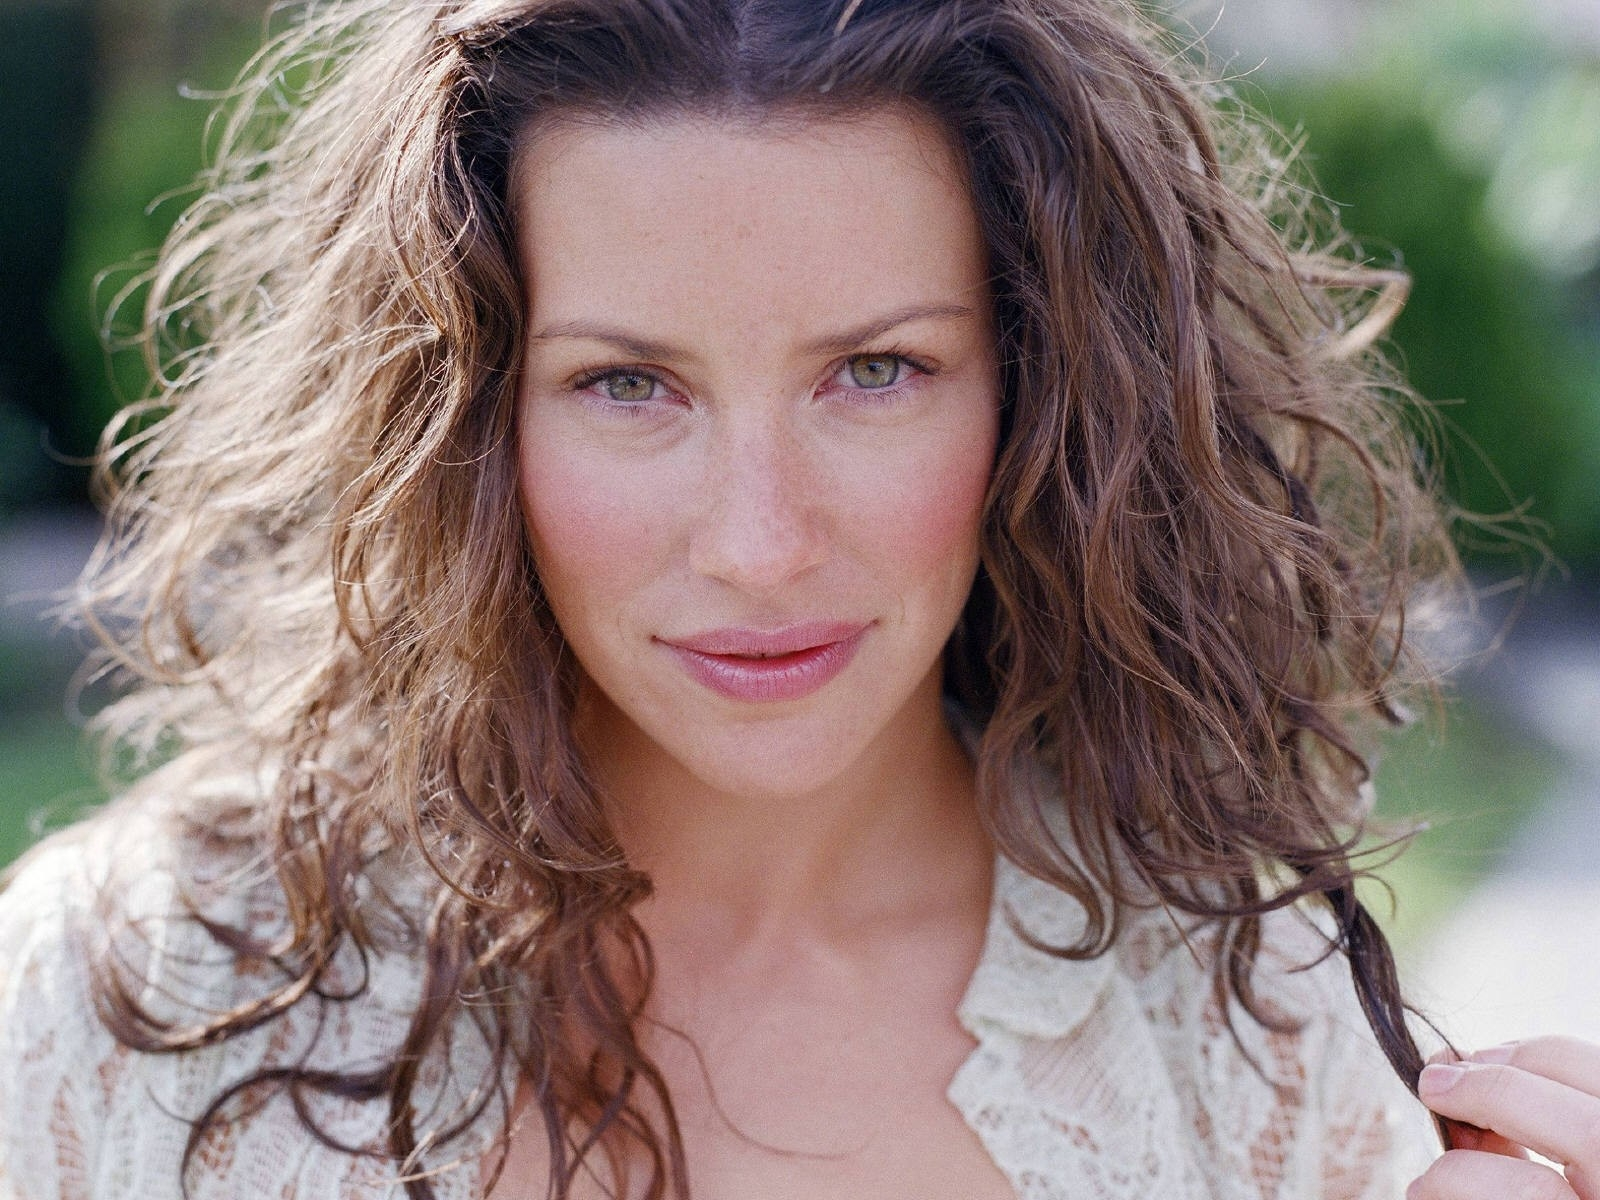 Wallpaper: una bella immagine di Evangeline Lilly